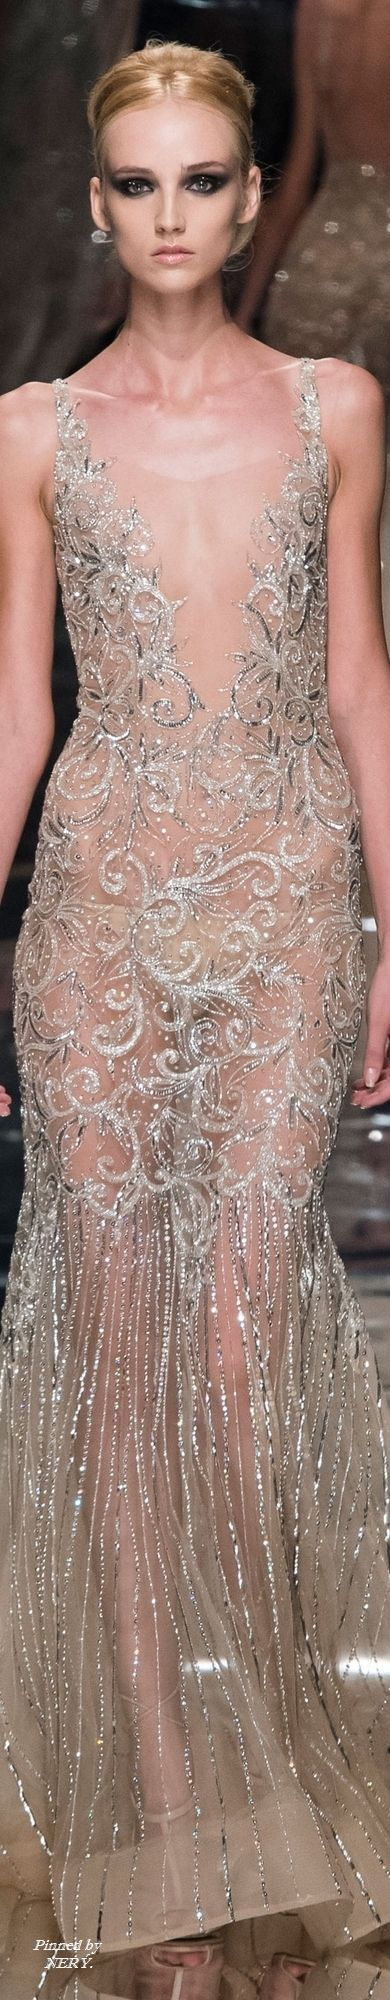 Rani Zakhem Collection Fall 2016 Couture